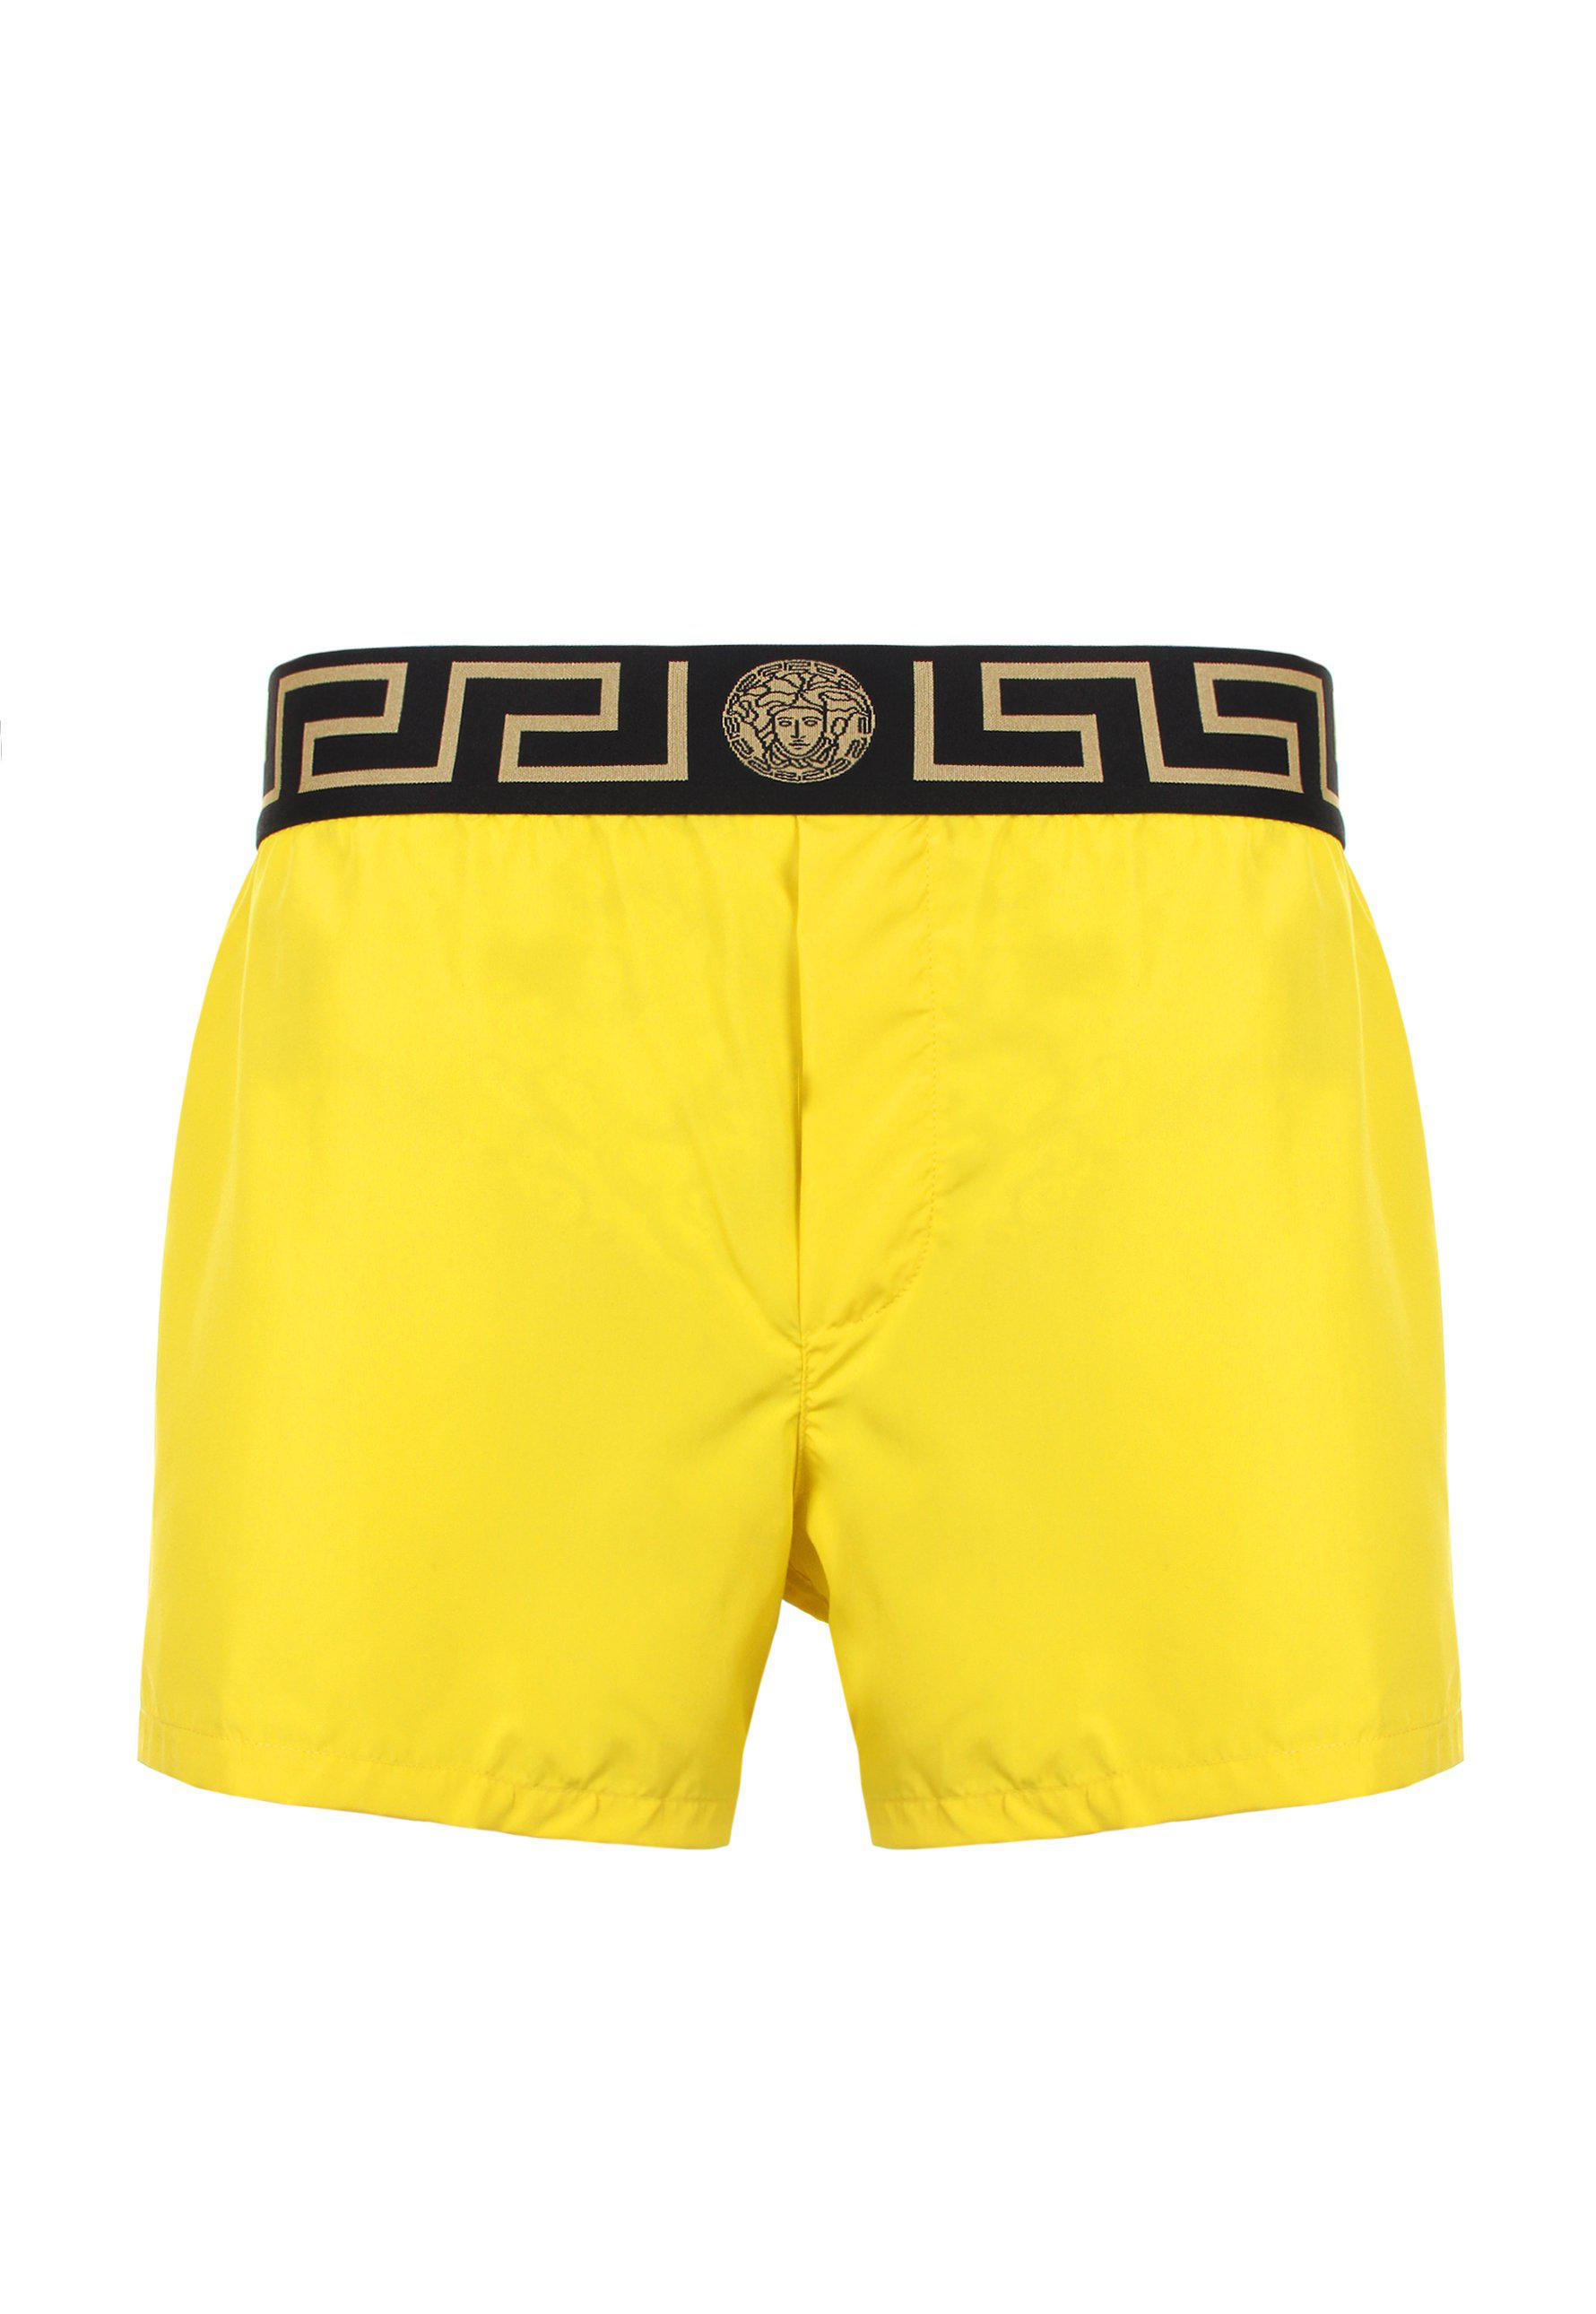 e8ee355c0c Versace Iconic Greca Swimming Shorts Yellow/black/gold in Yellow for ...